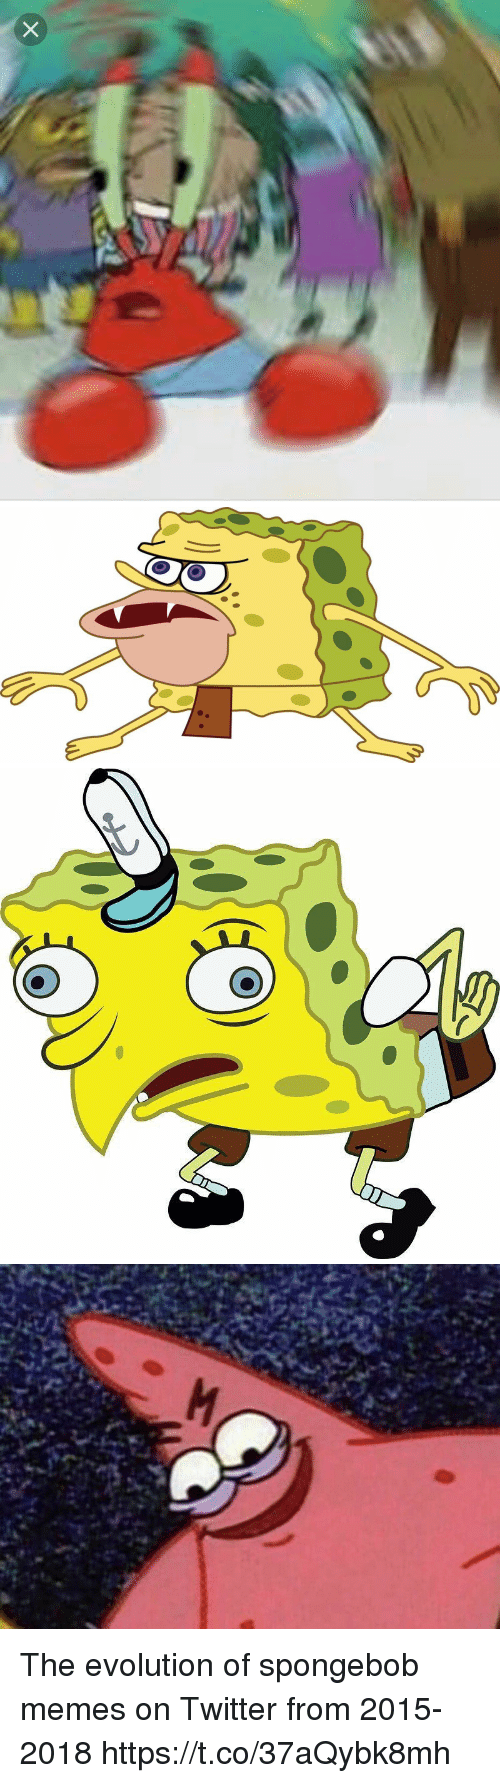 Funny memes and spongebob the evolution of spongebob memes on twitter from 2015